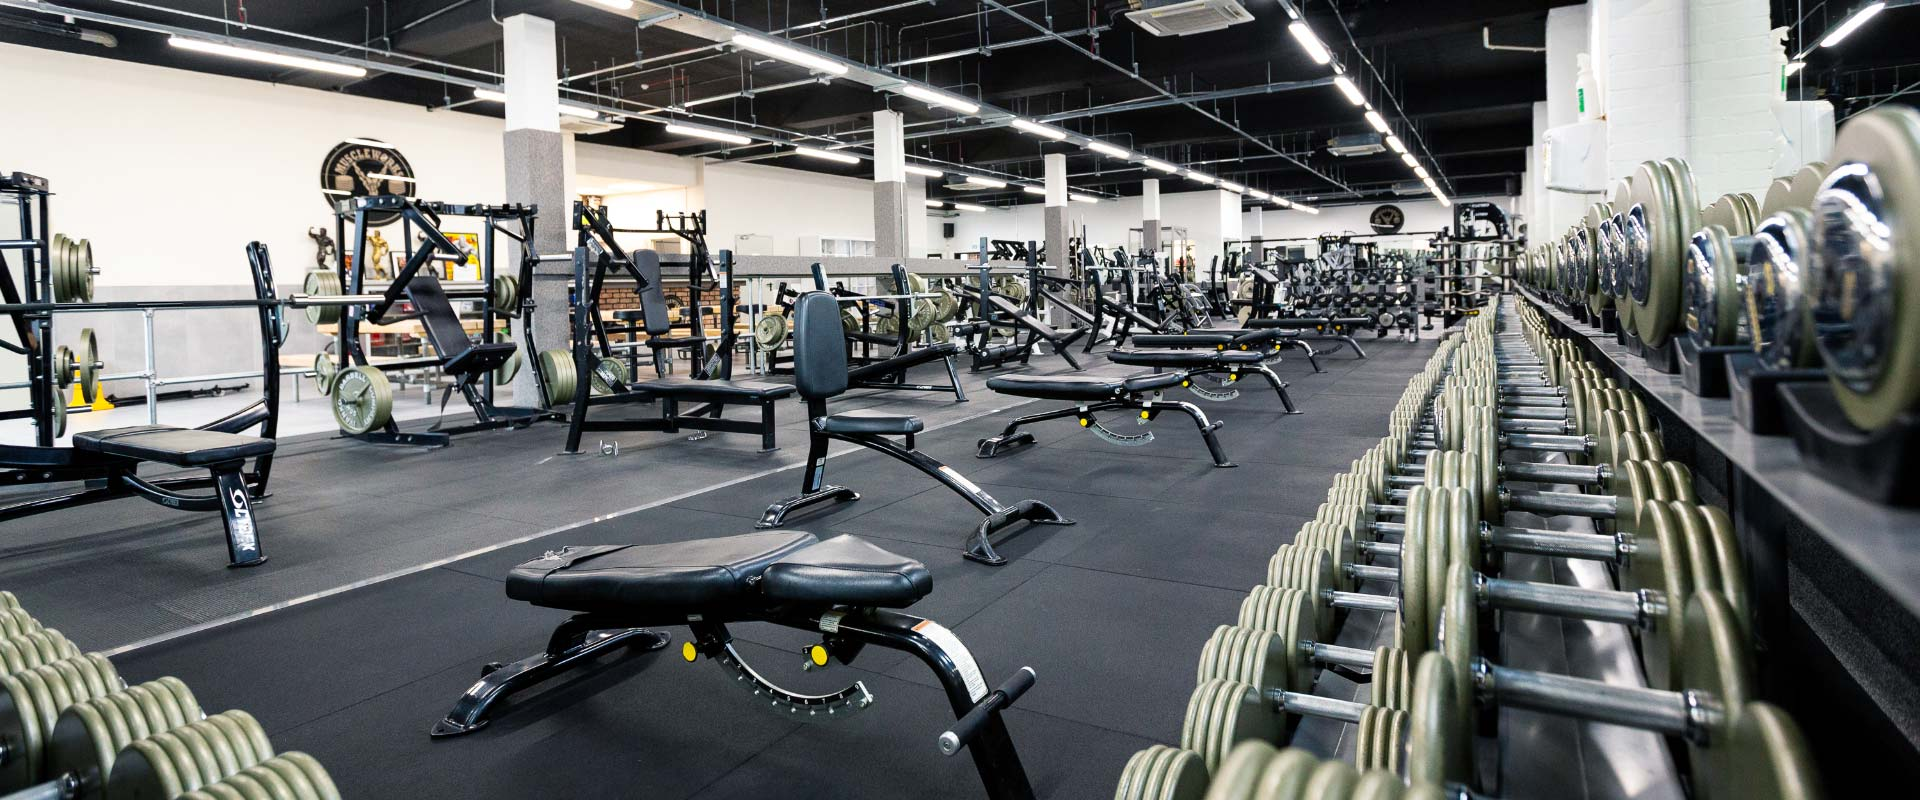 Gym Freeweights Area